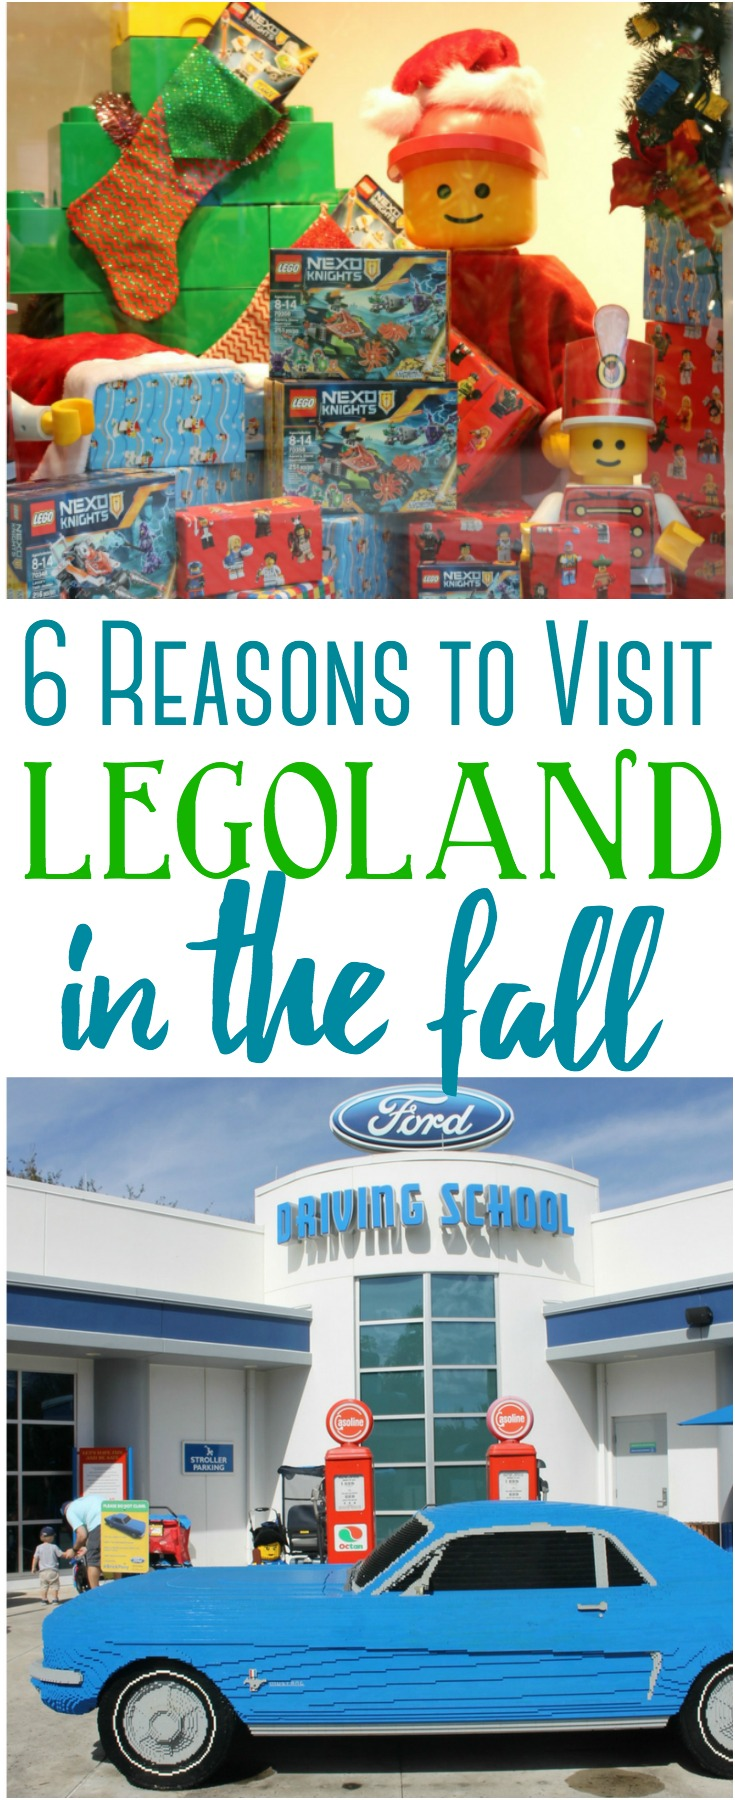 LEGOLAND is a popular tourist destination for families with small children. Here are 6 reasons you may want to visit LEGOLAND in the fall!